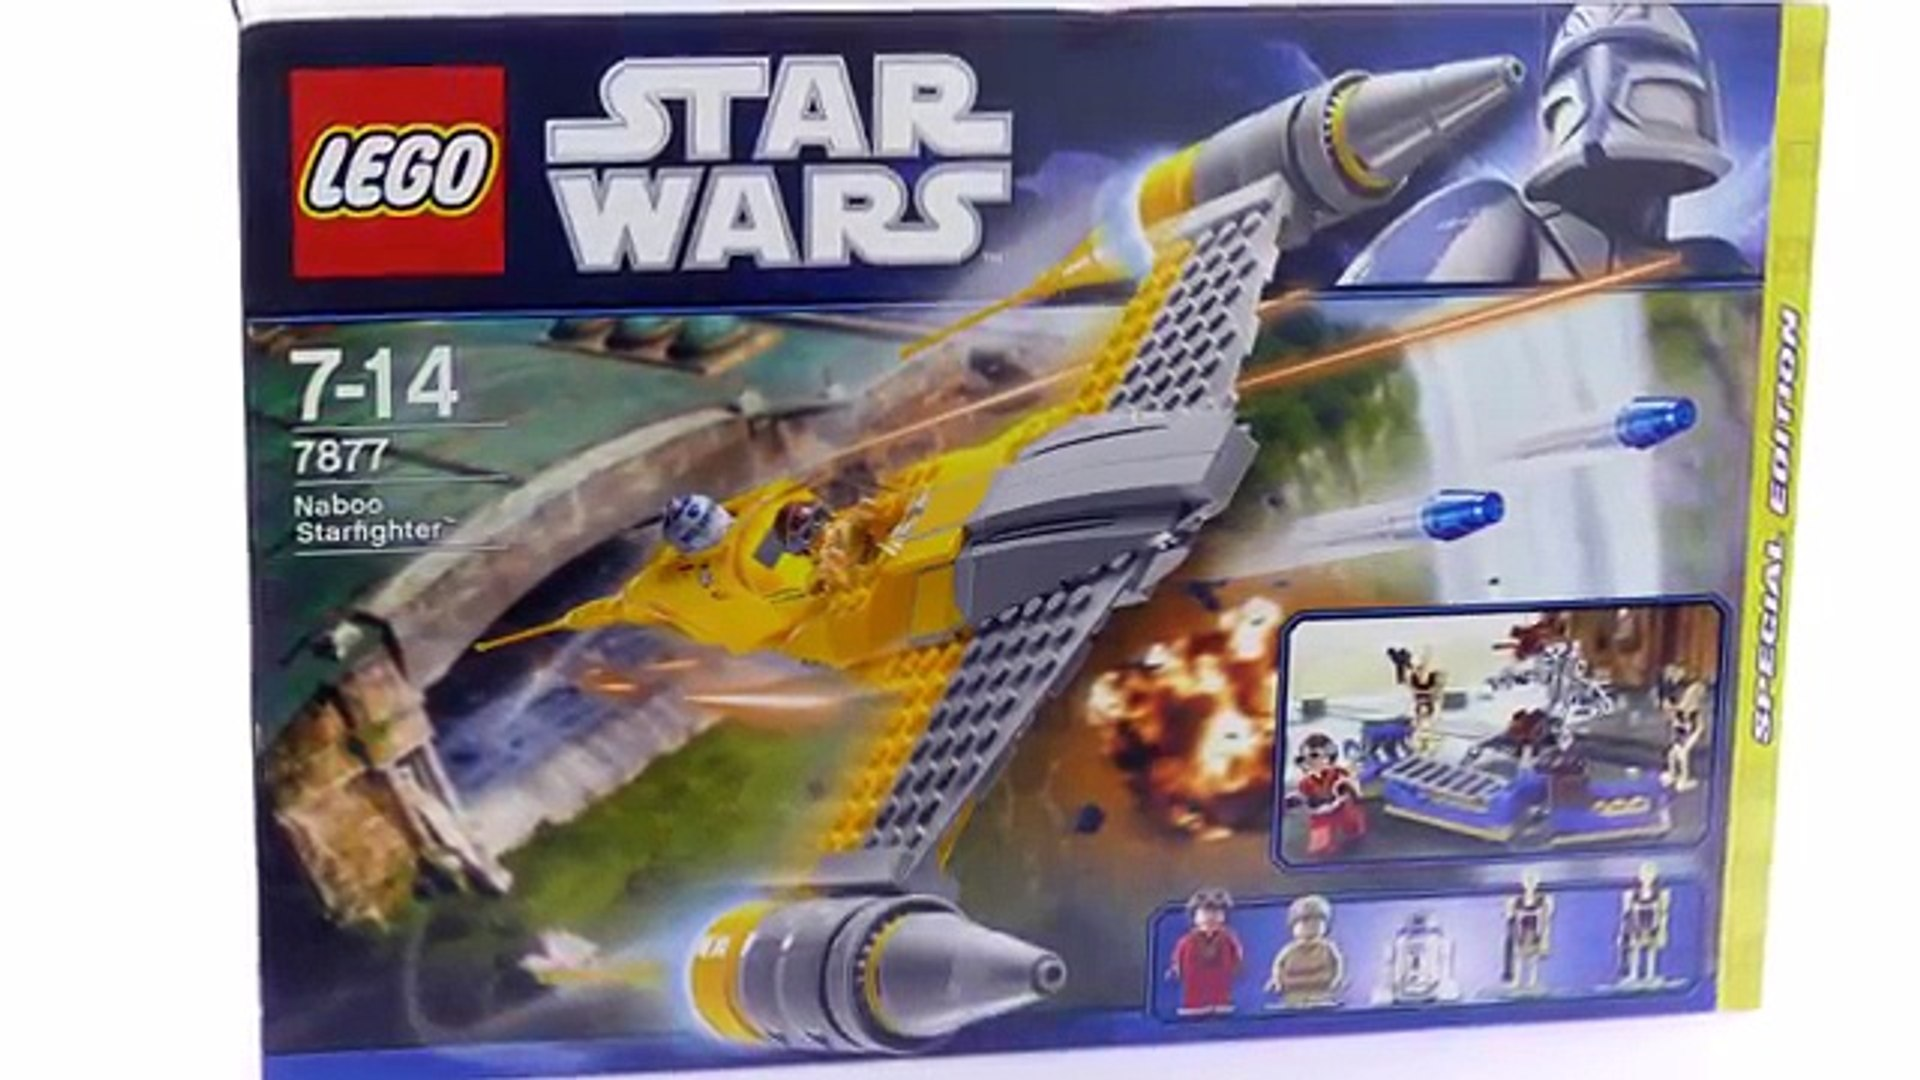 Lego Star Wars 7877 Naboo Starfighter Lego Speed Build Review Video Dailymotion